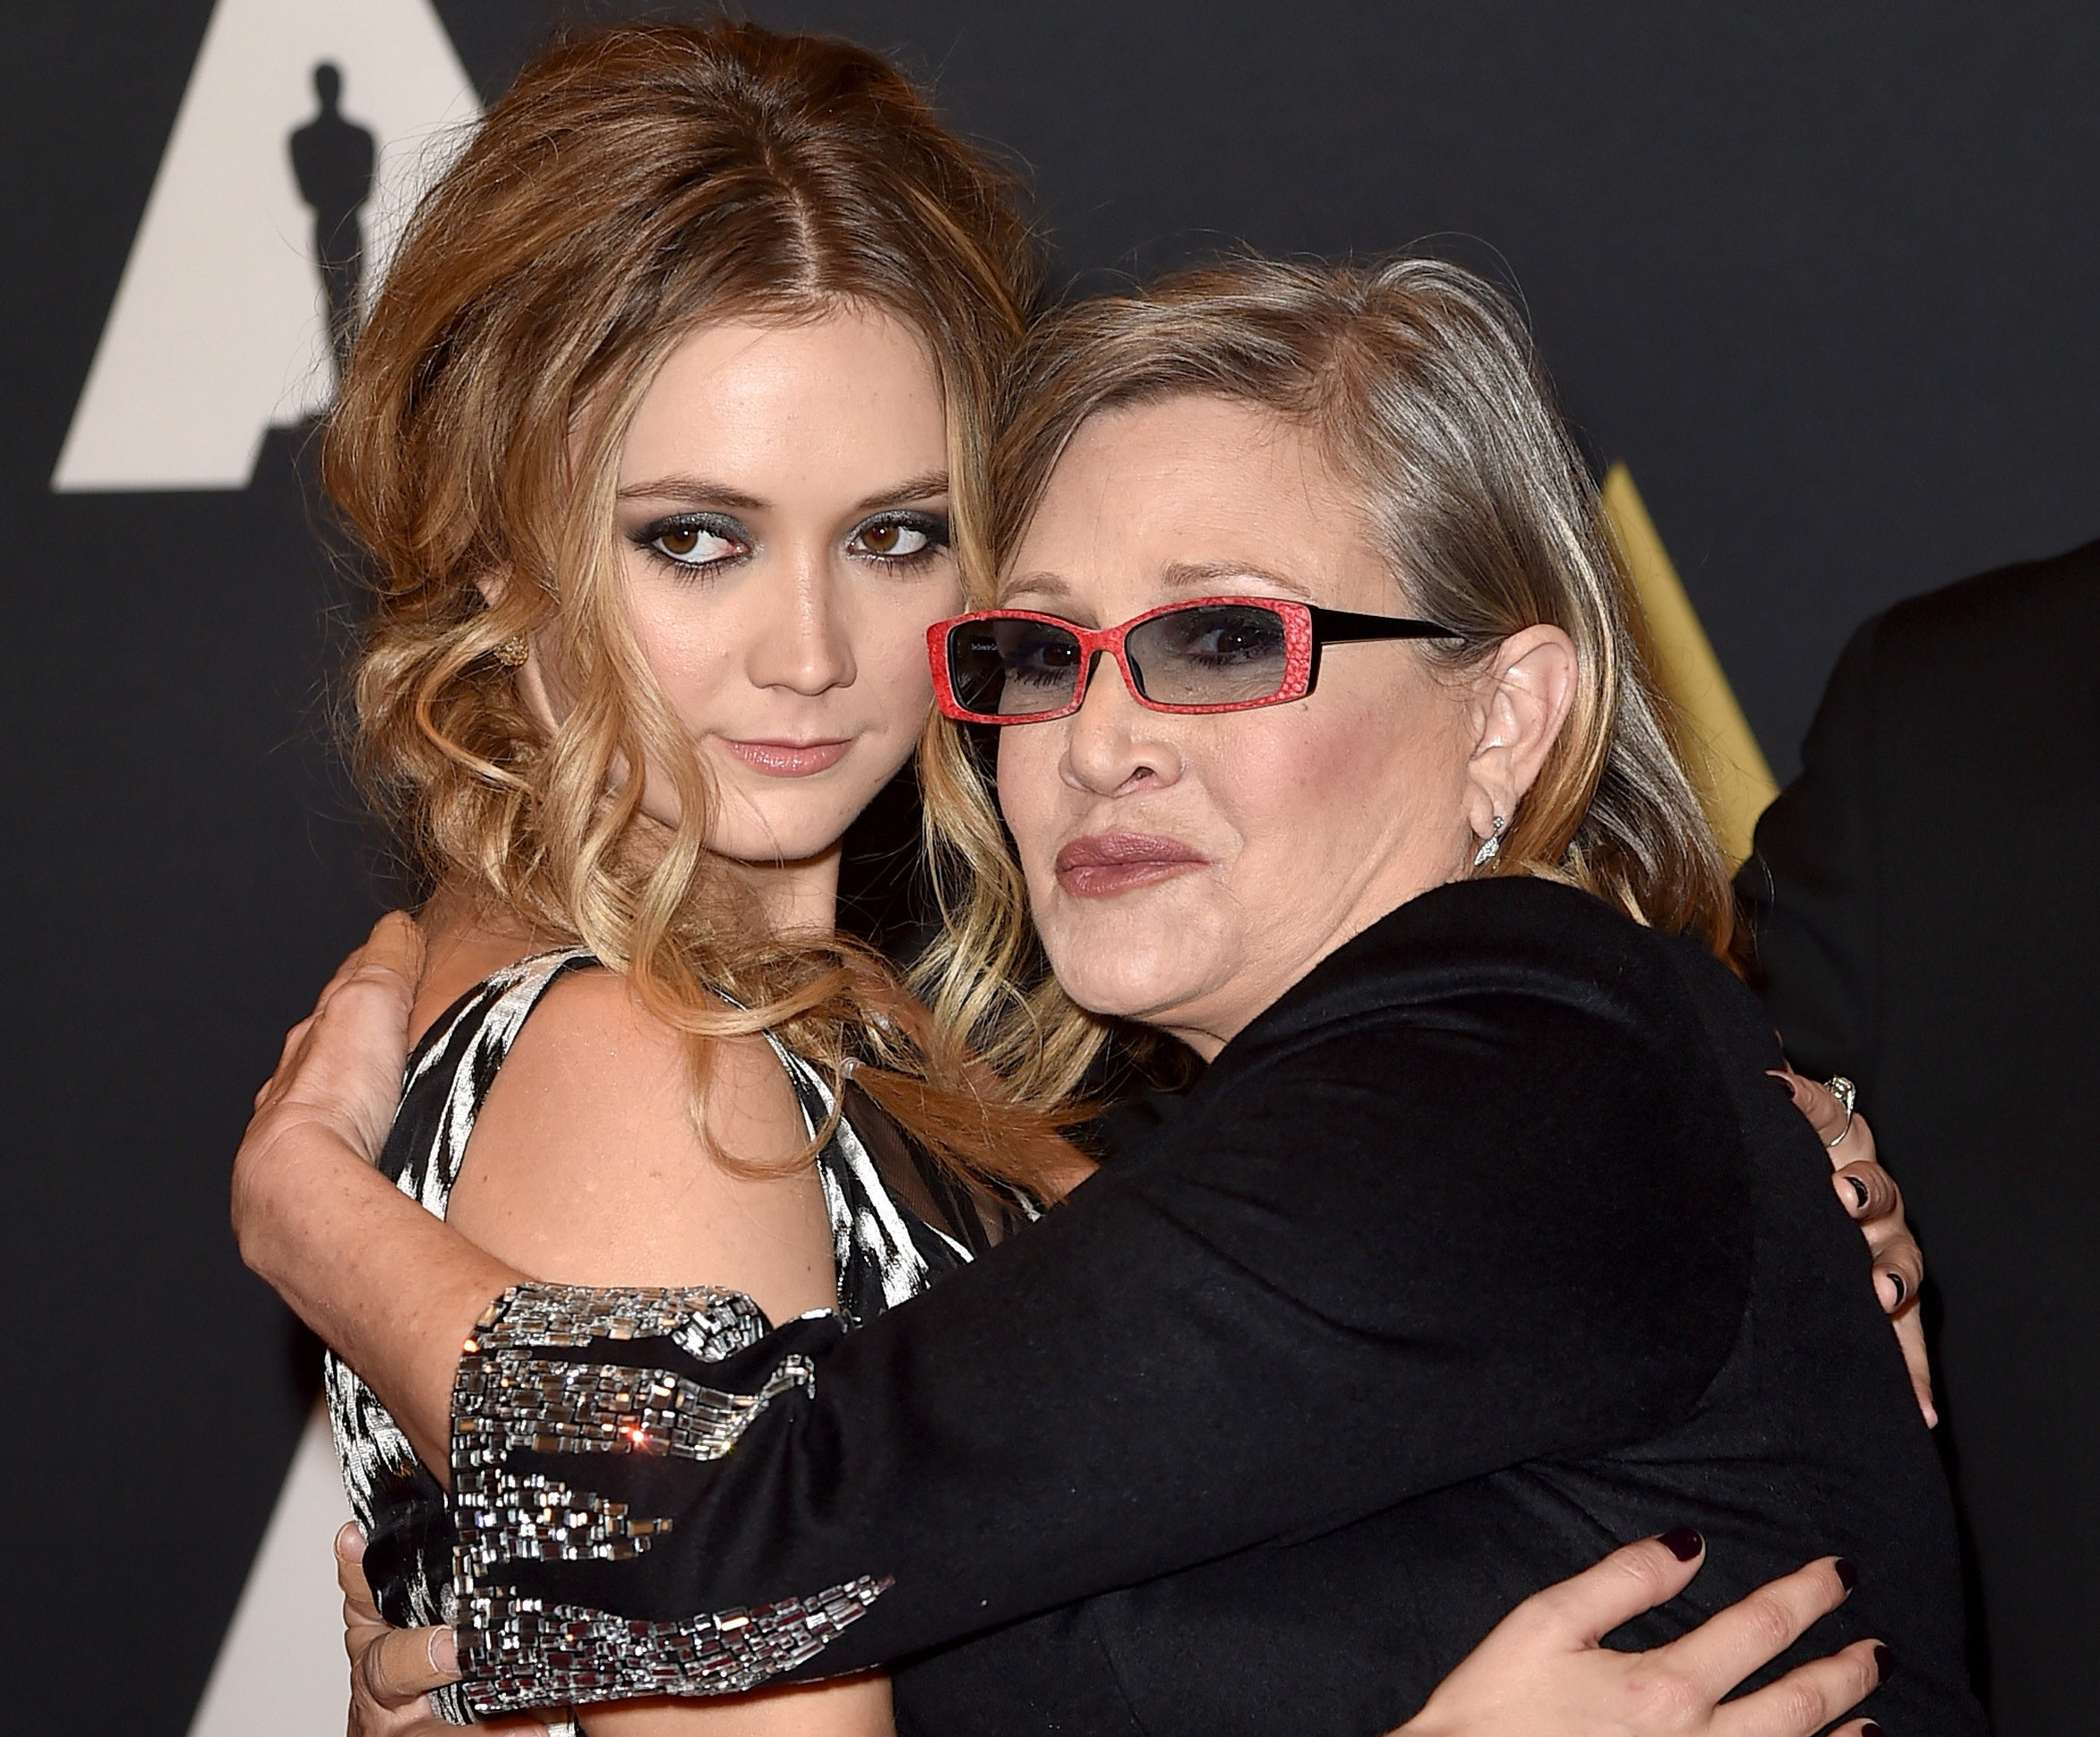 Carrie Fisher and Billie Lourd hugging